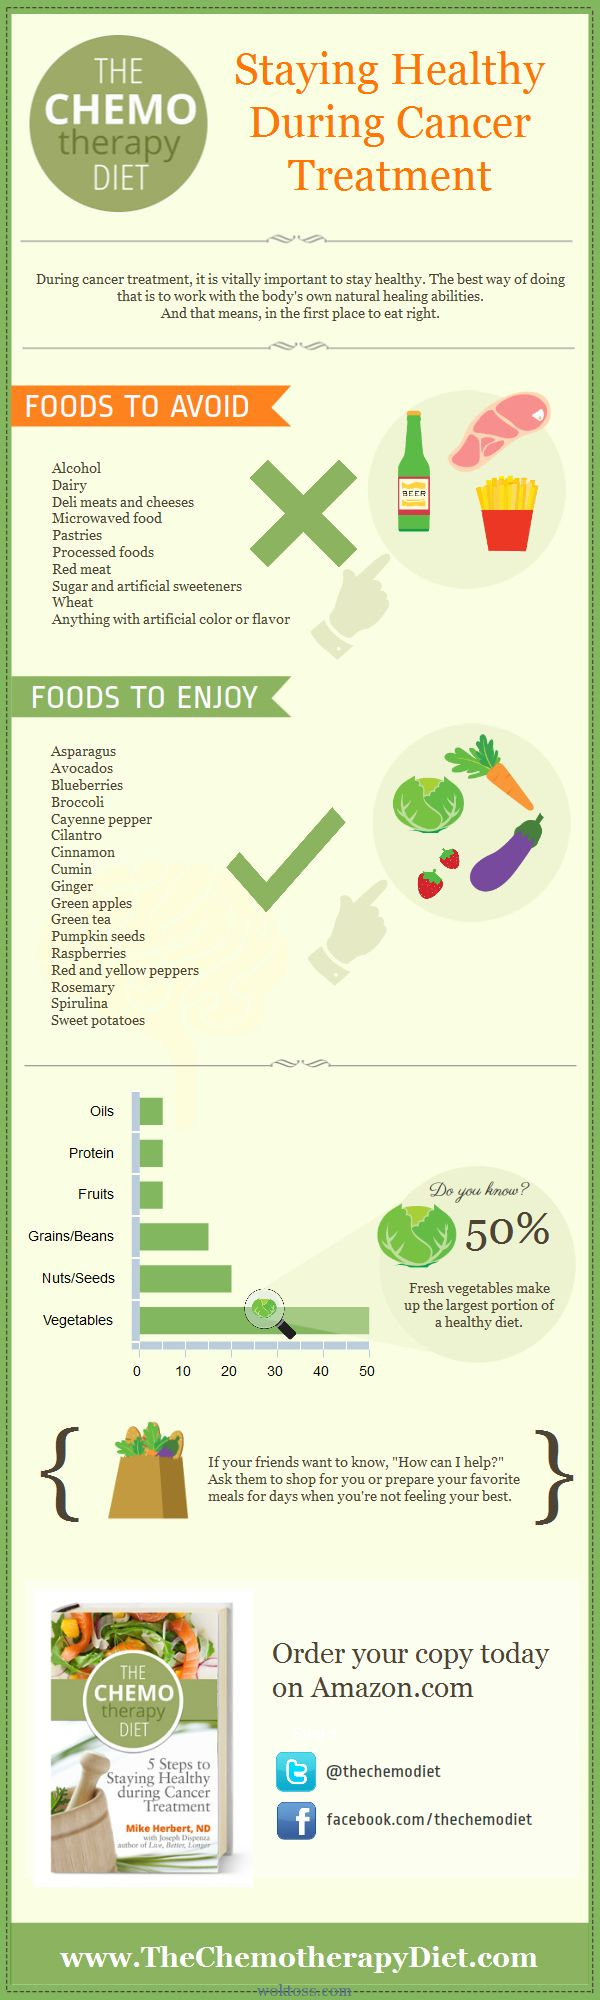 healthy-diet-during-cancer-treatment infographic on woktoss.com